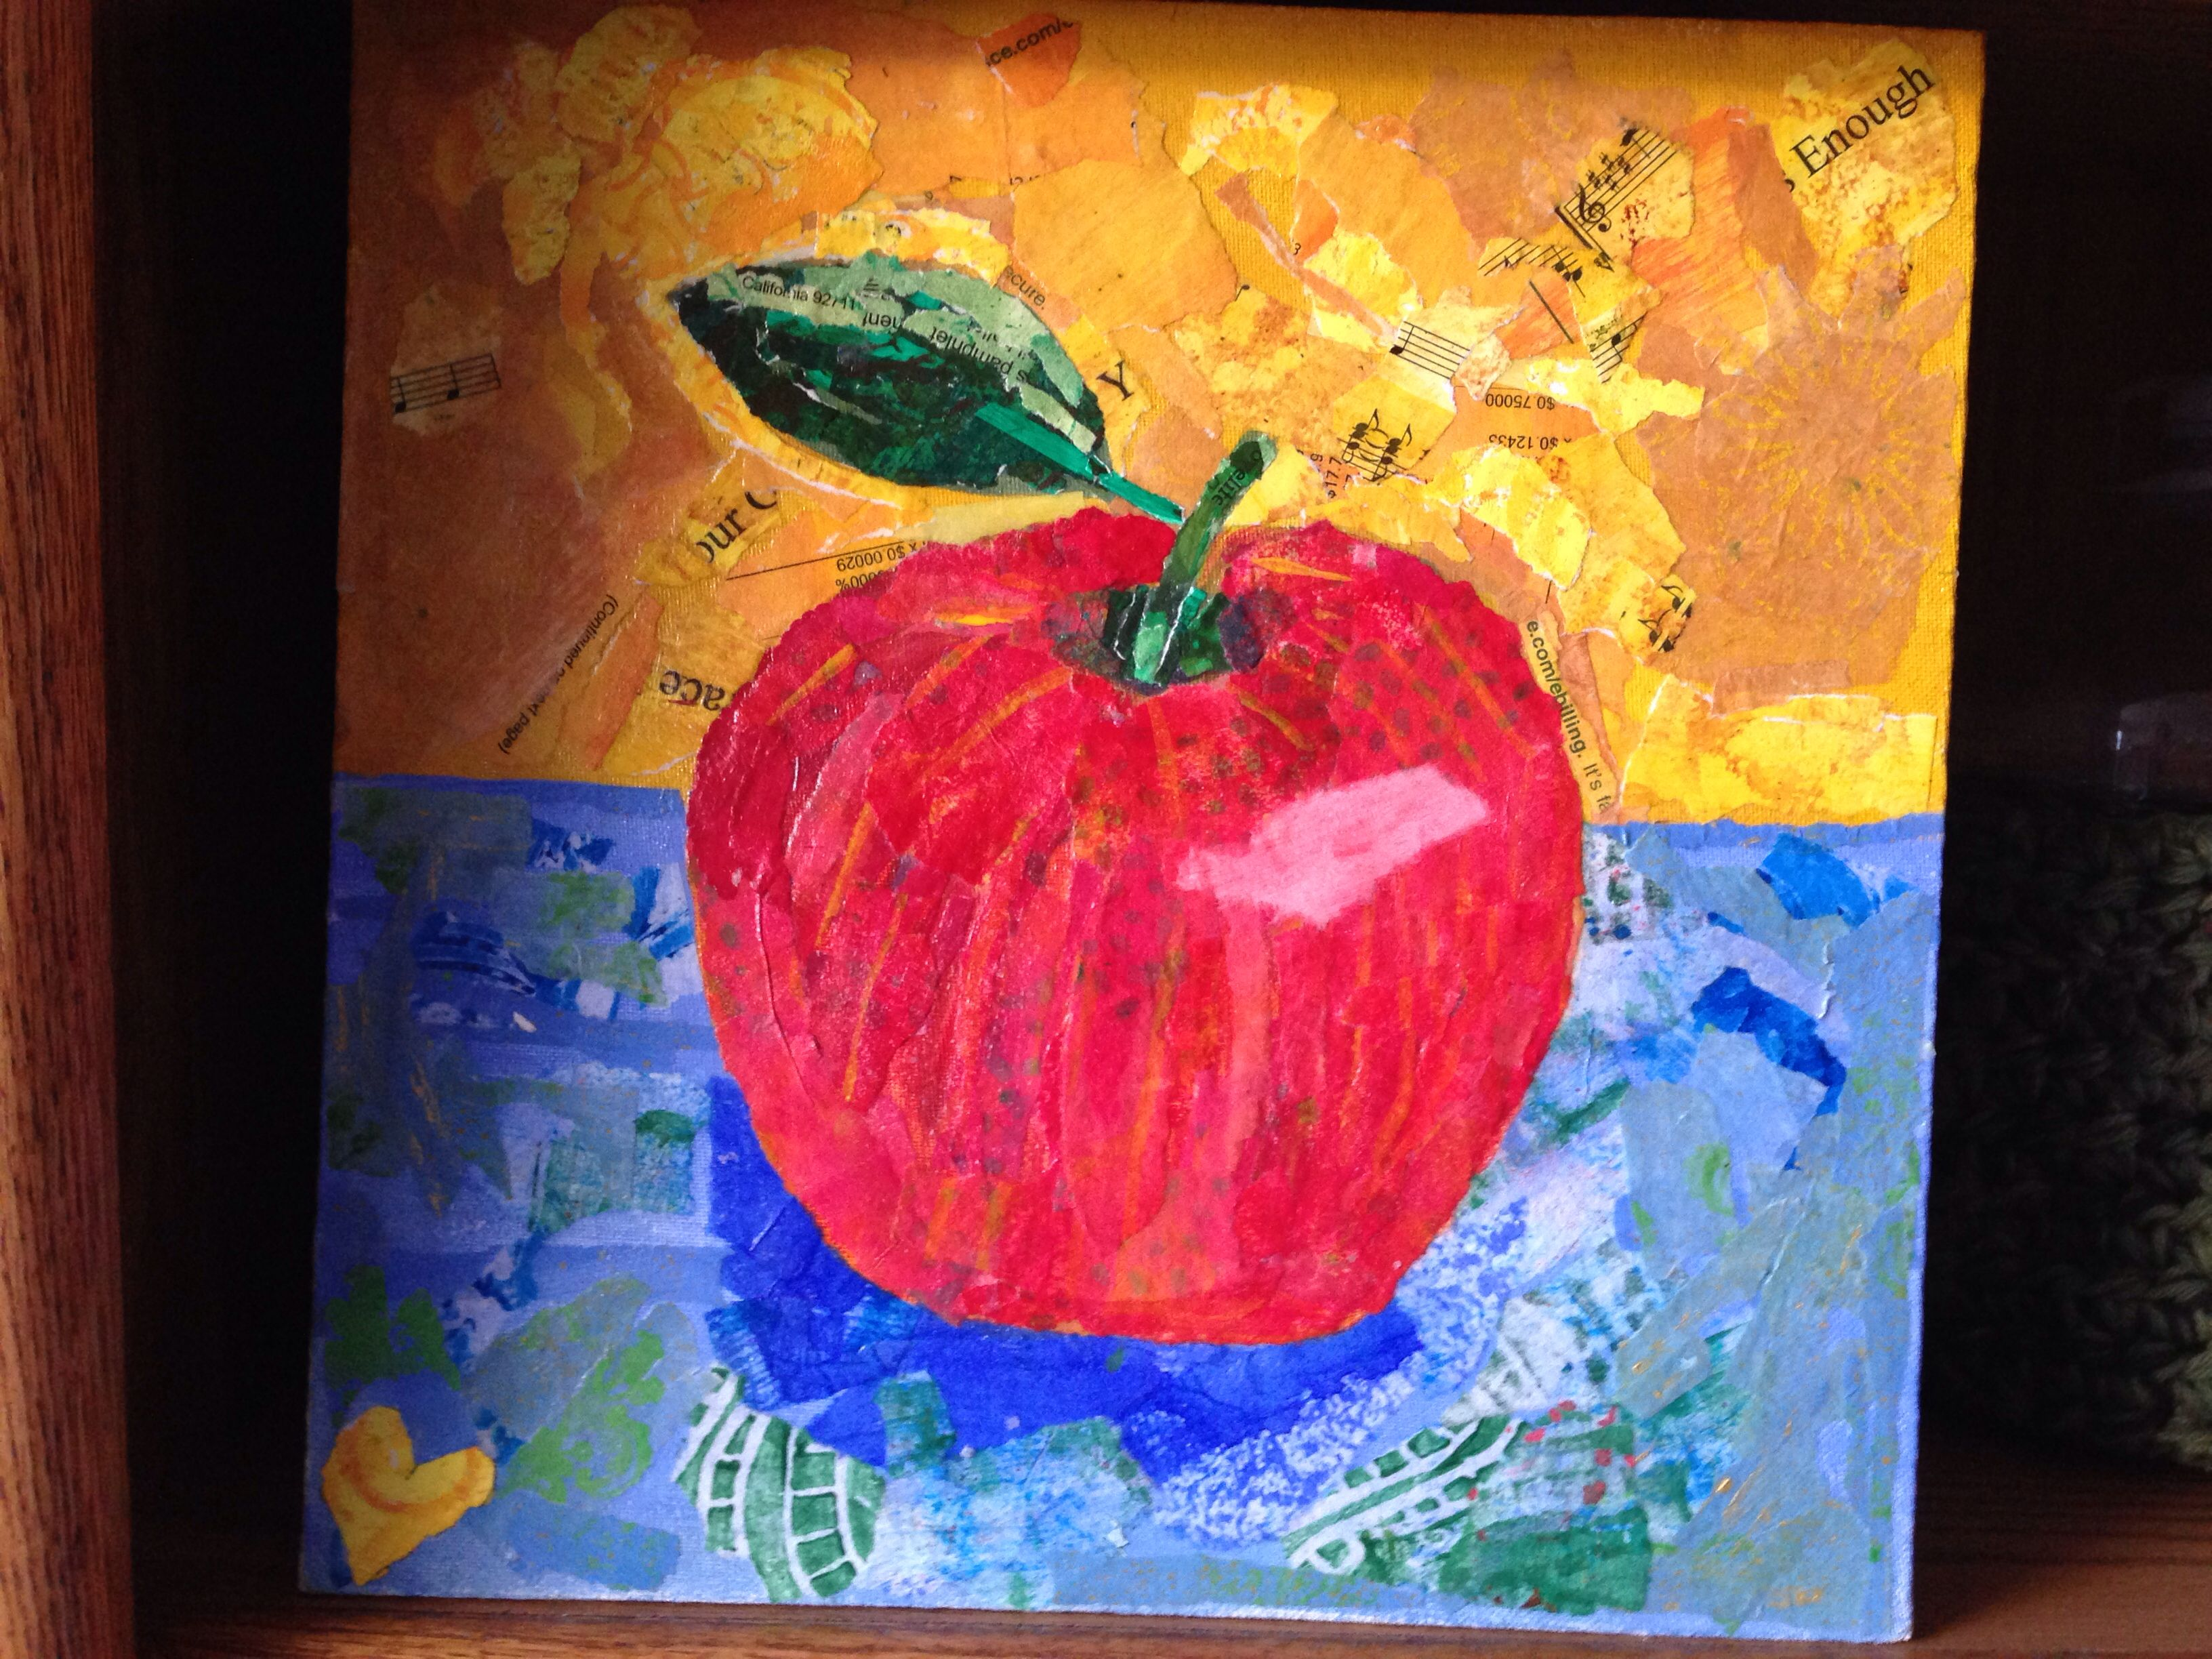 My first Apple Paper Painting Collage. It was really fun